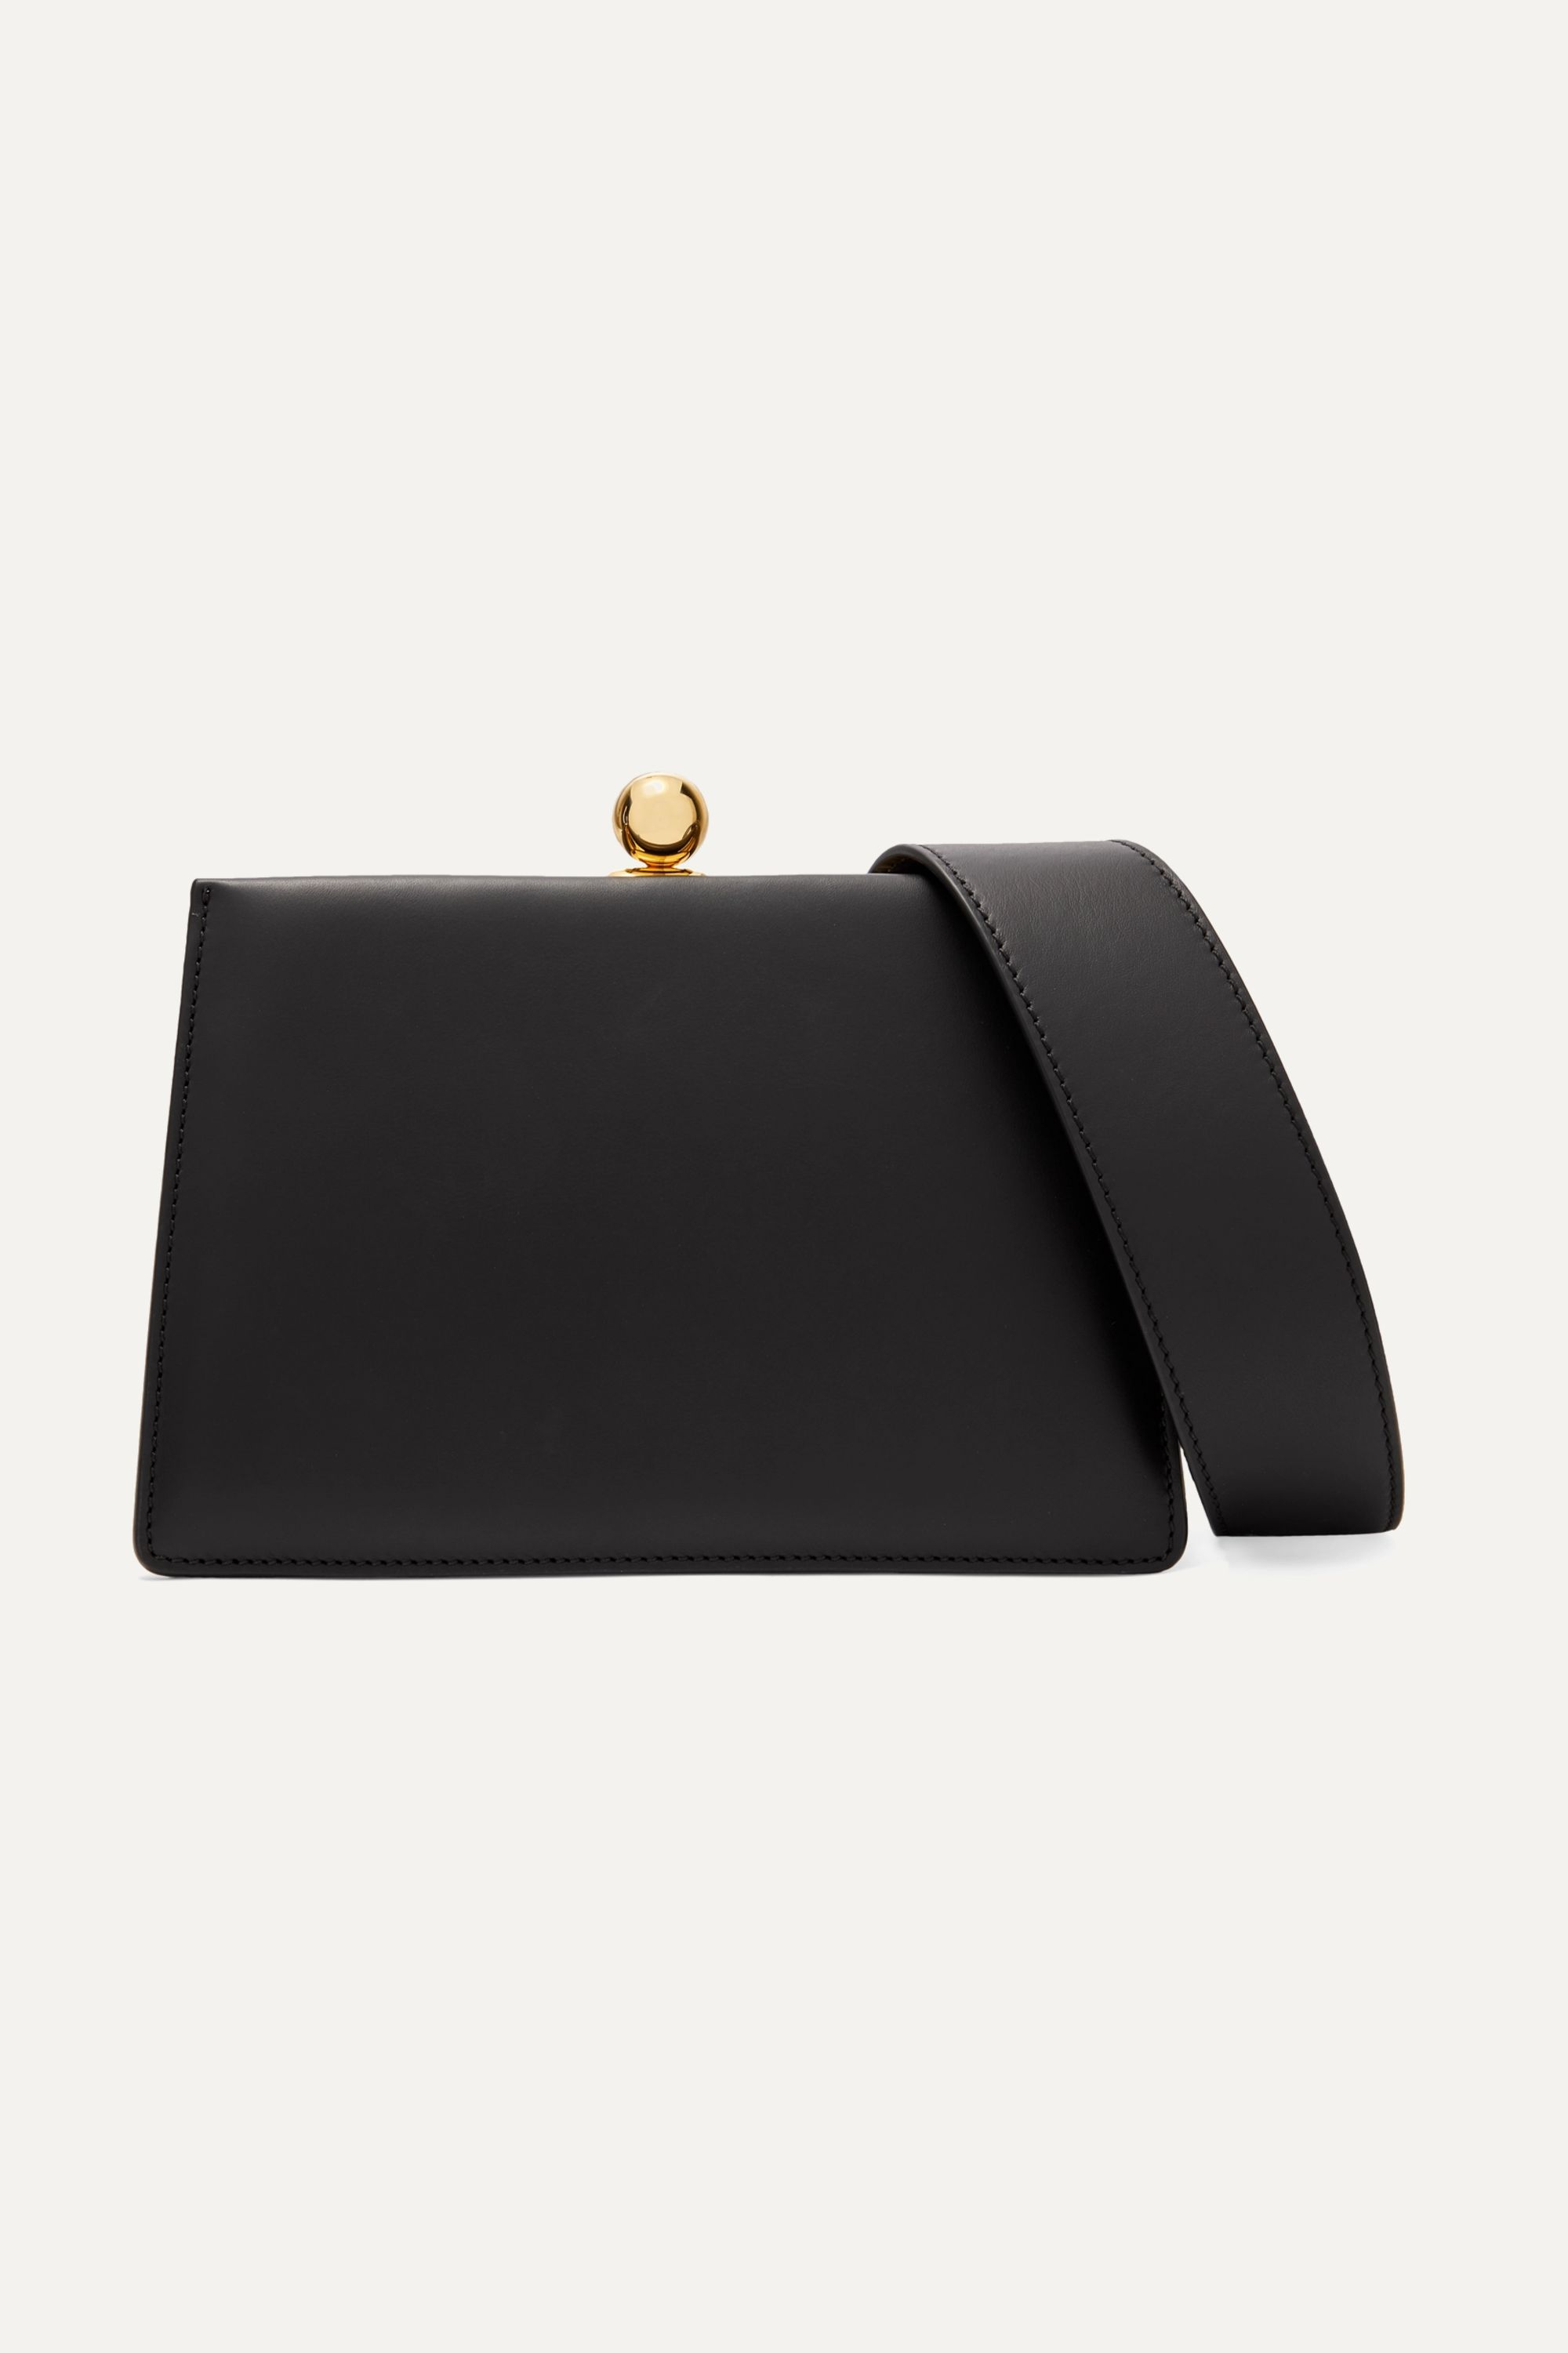 Ratio et Motus Mini Twin leather shoulder bag